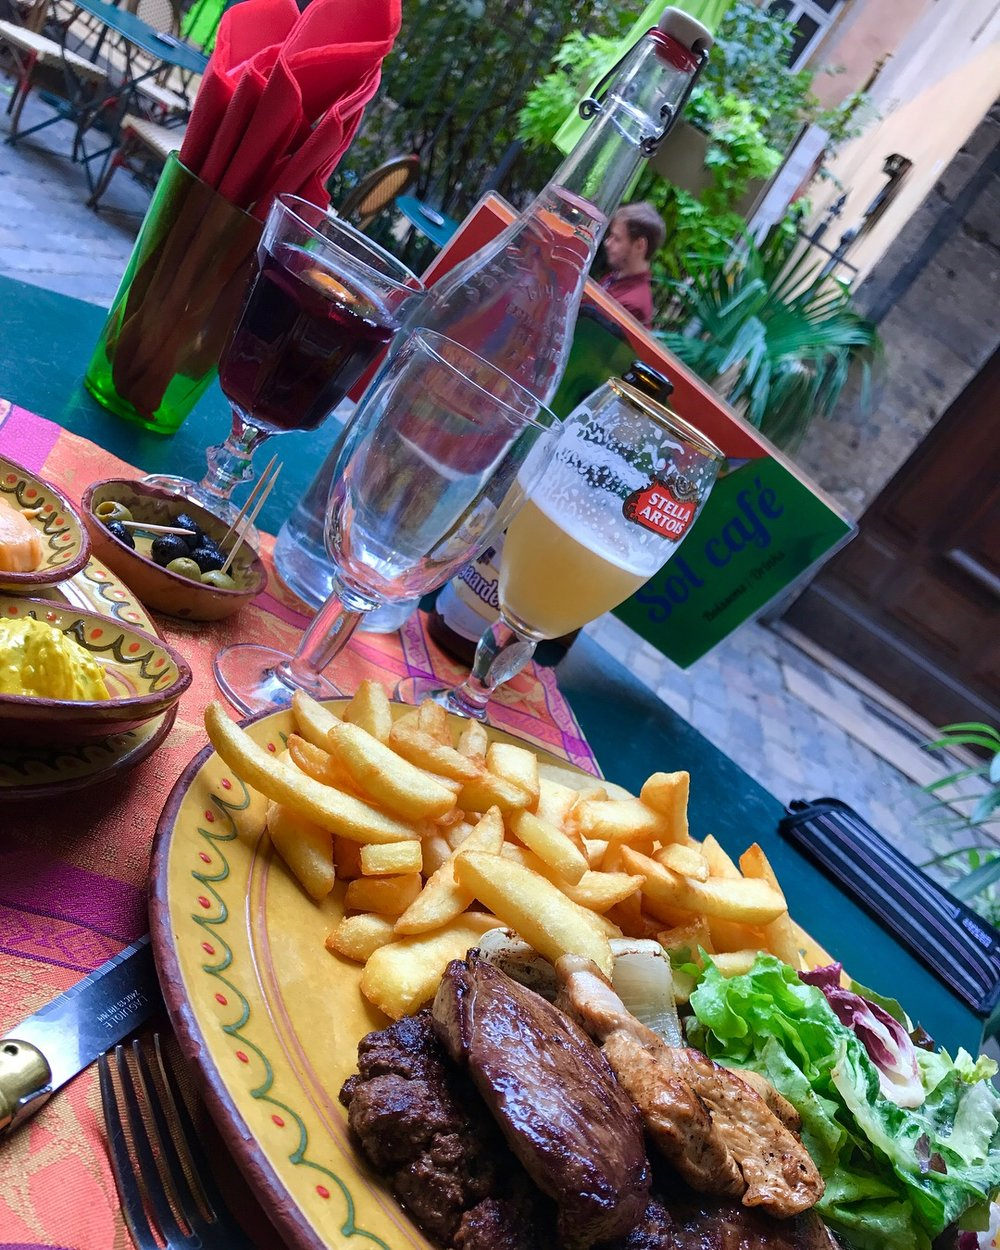 Eating and people watching are two of my favorite pastimes. (Steak and frites in Vieux Lyon)